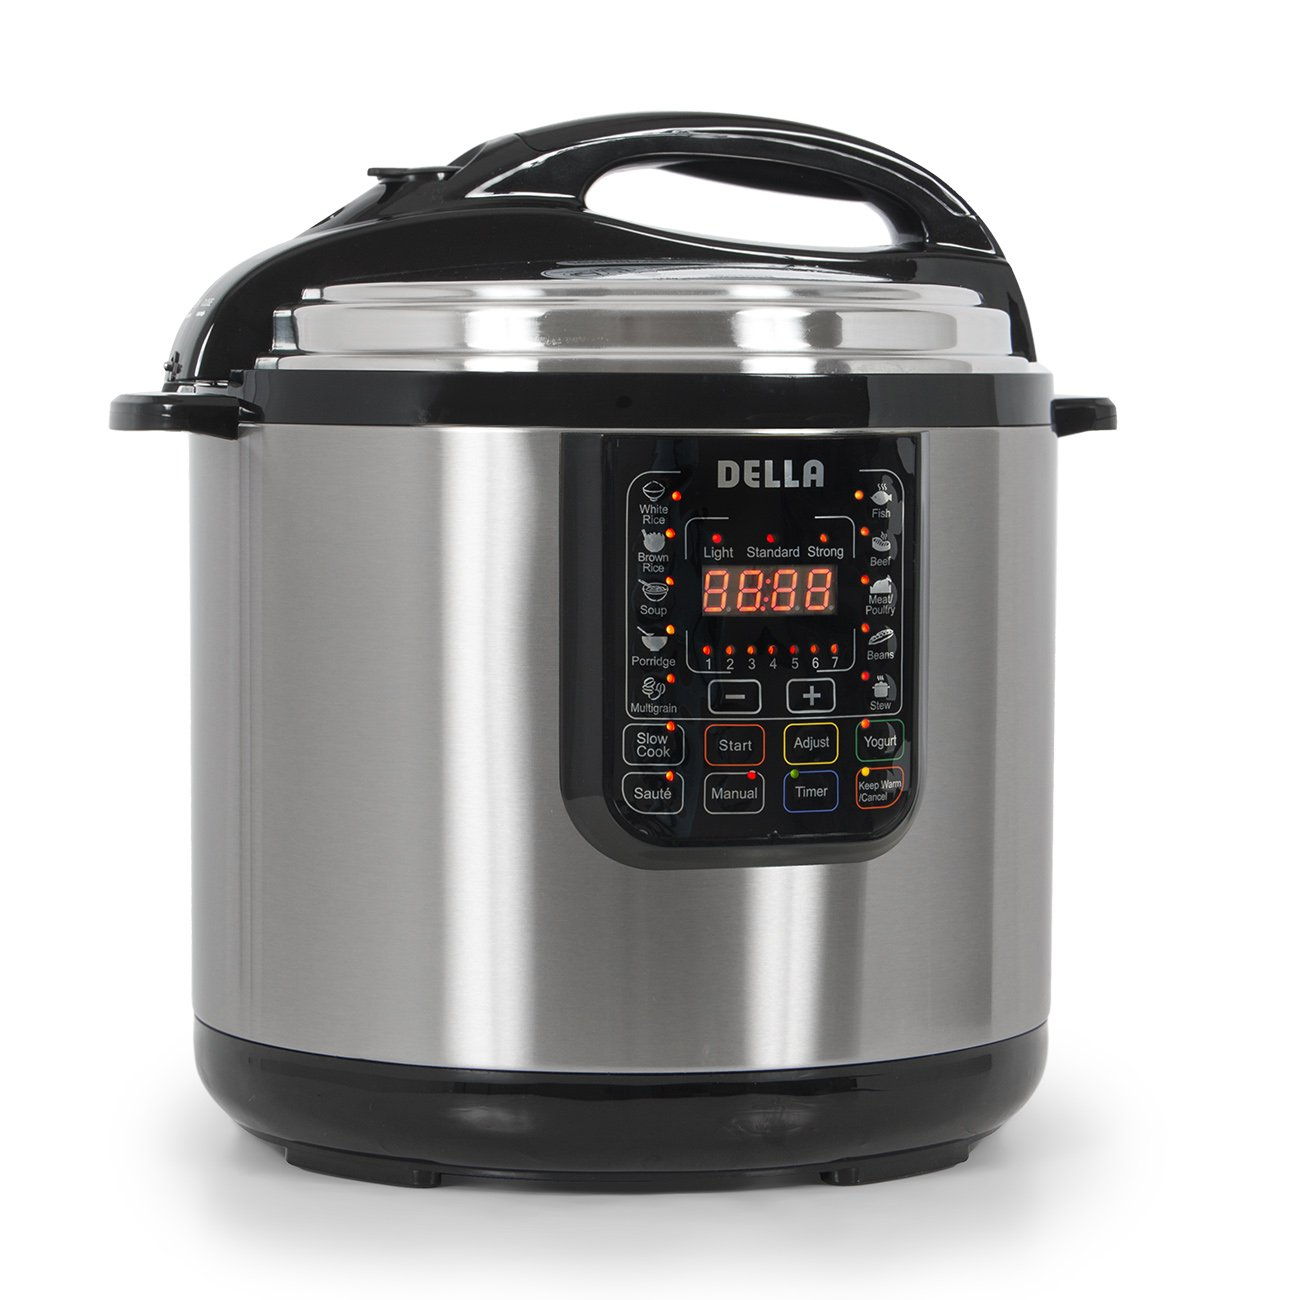 Electric Pressure Cooker For Canning ~ The biggest electric pressure cookers large enough for